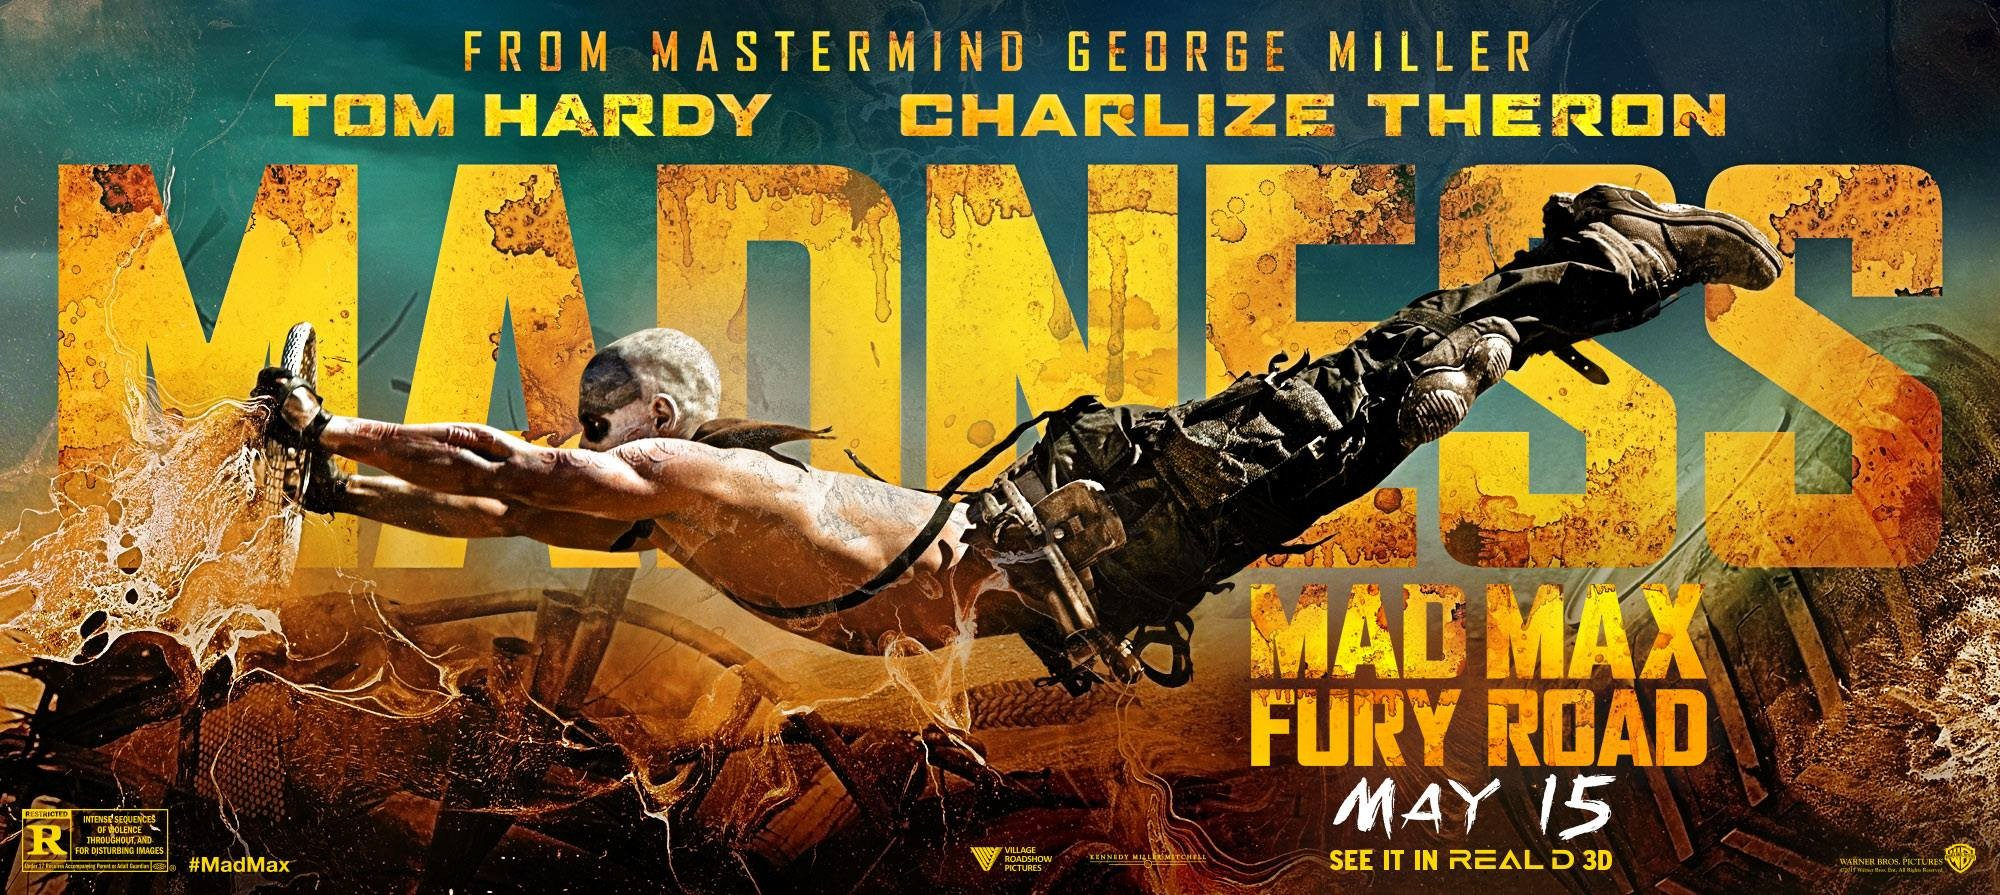 Mad Max Fury Road-Banner-08Abril2015